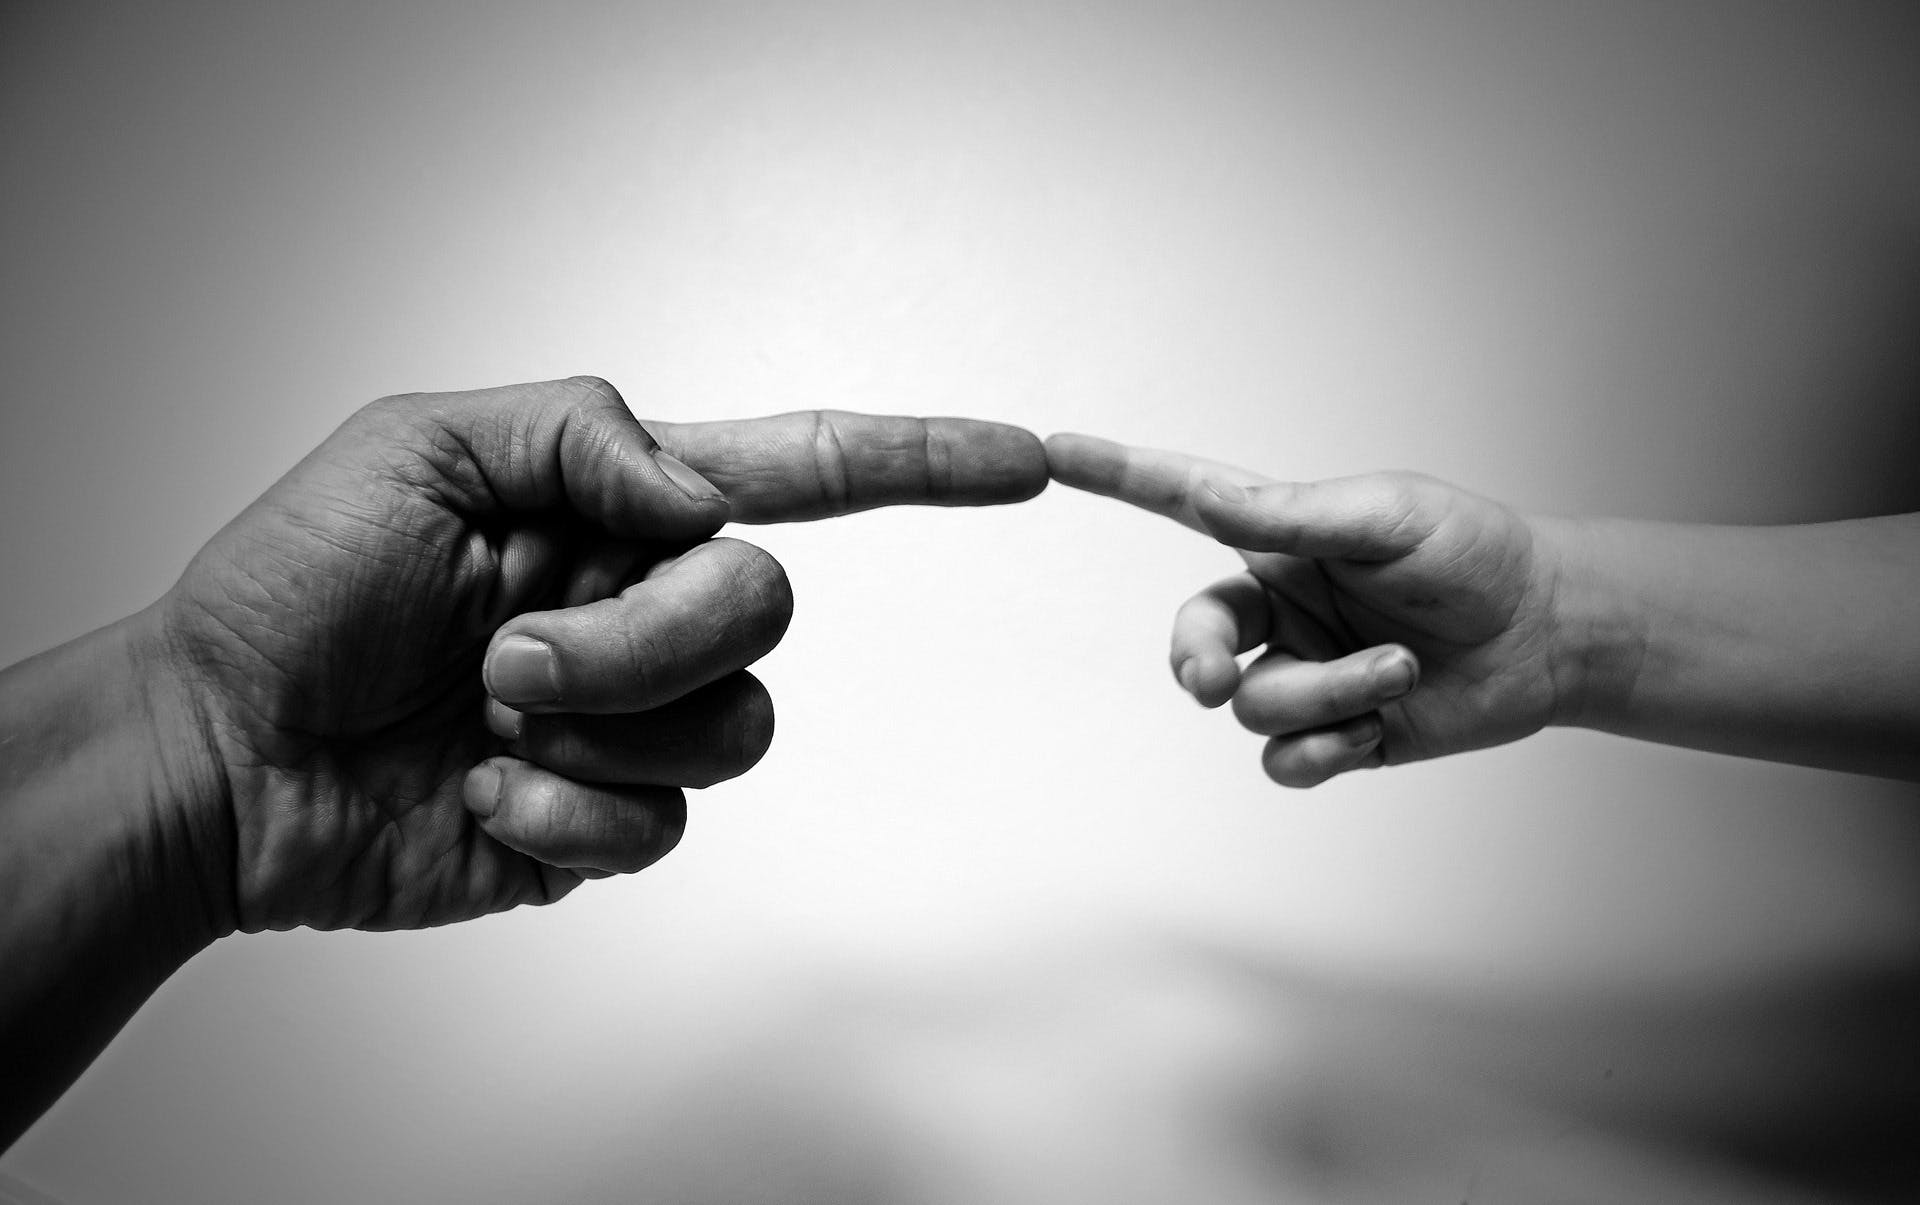 Grayscale Photo of Human Aligning Fingers